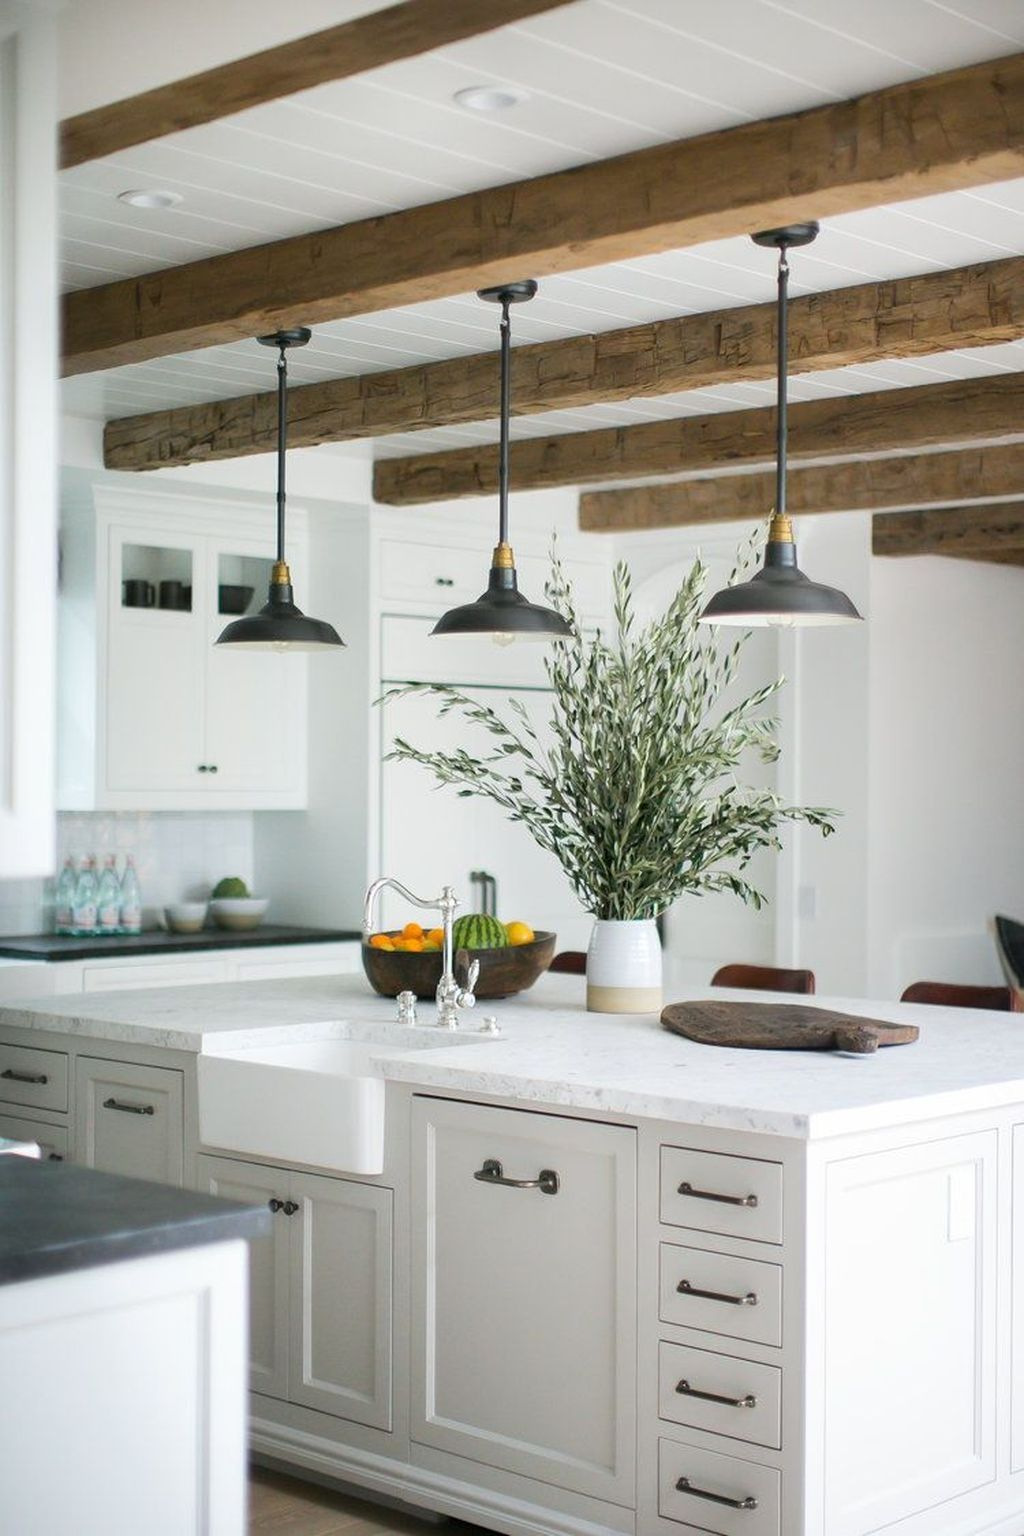 50 affordable white wood beams ceiling ideas for cottage kitchen island decor interior design on kitchen island ideas modern farmhouse id=93904